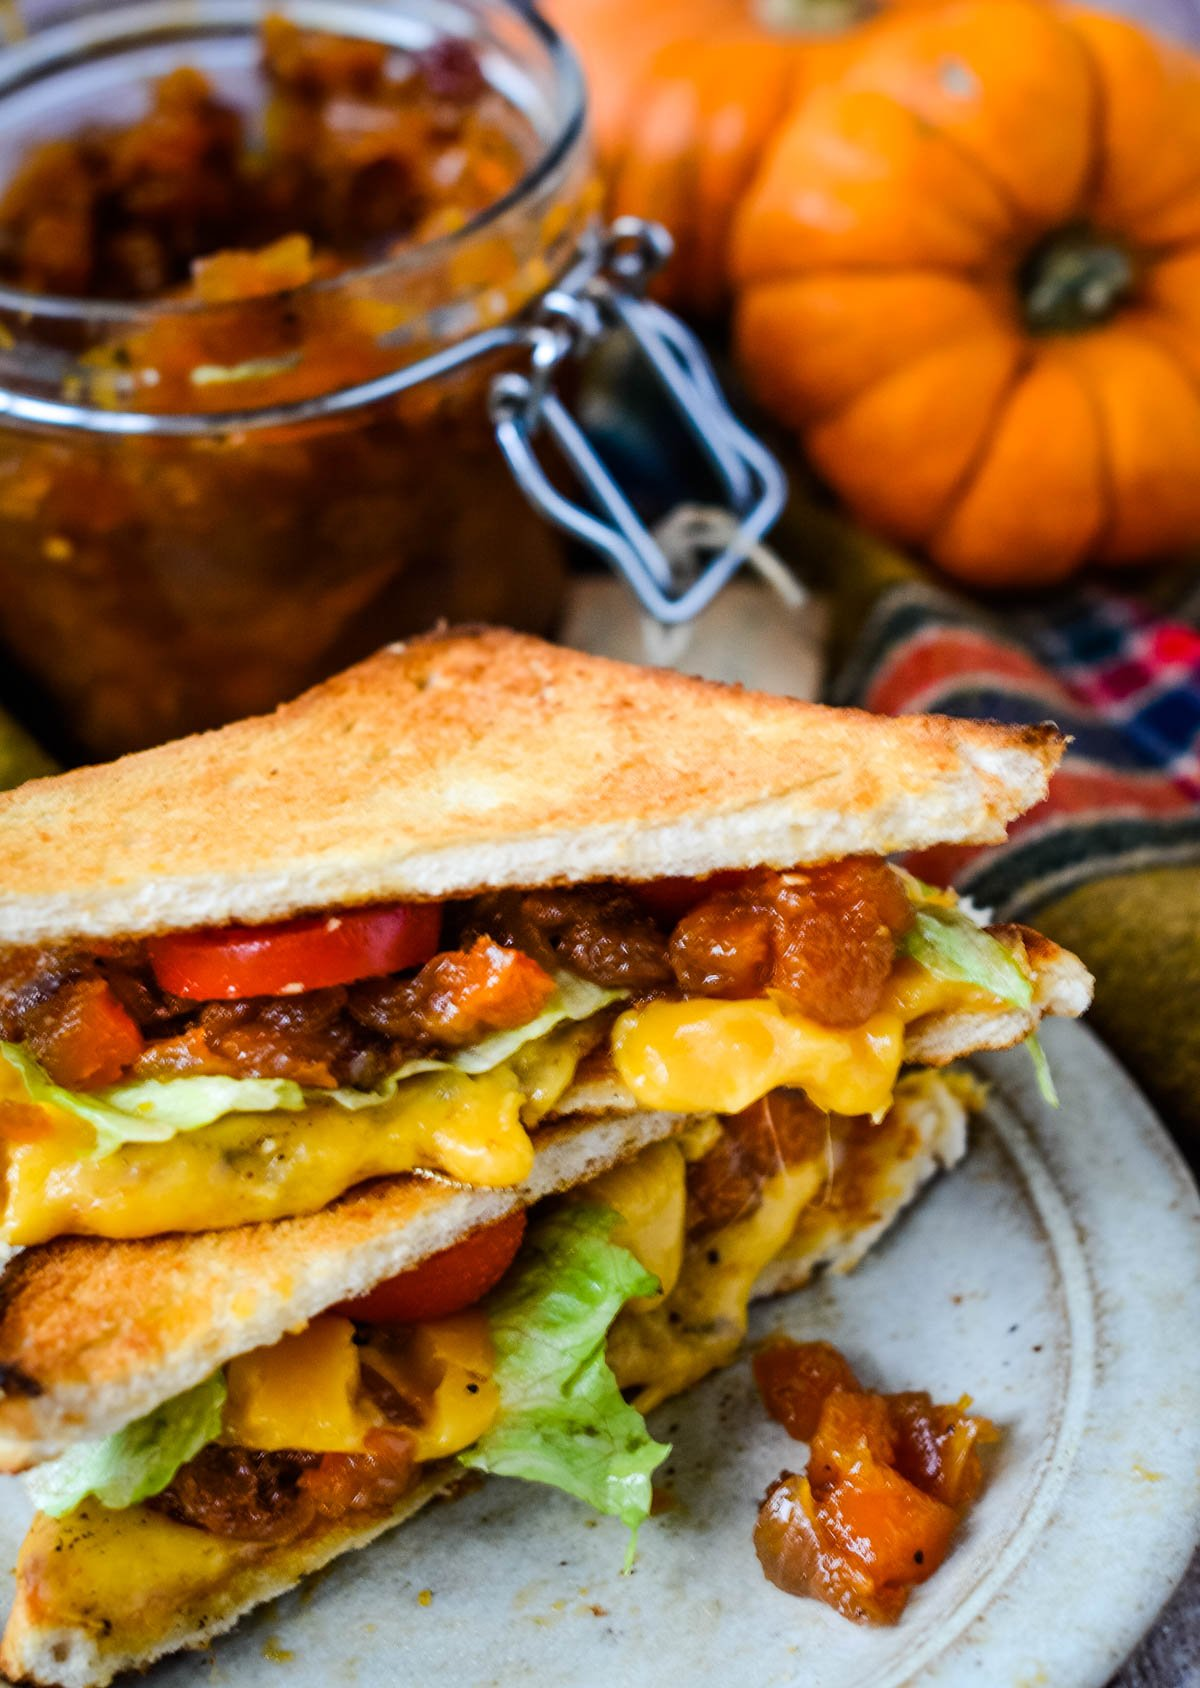 chutney in a toasted sandwich